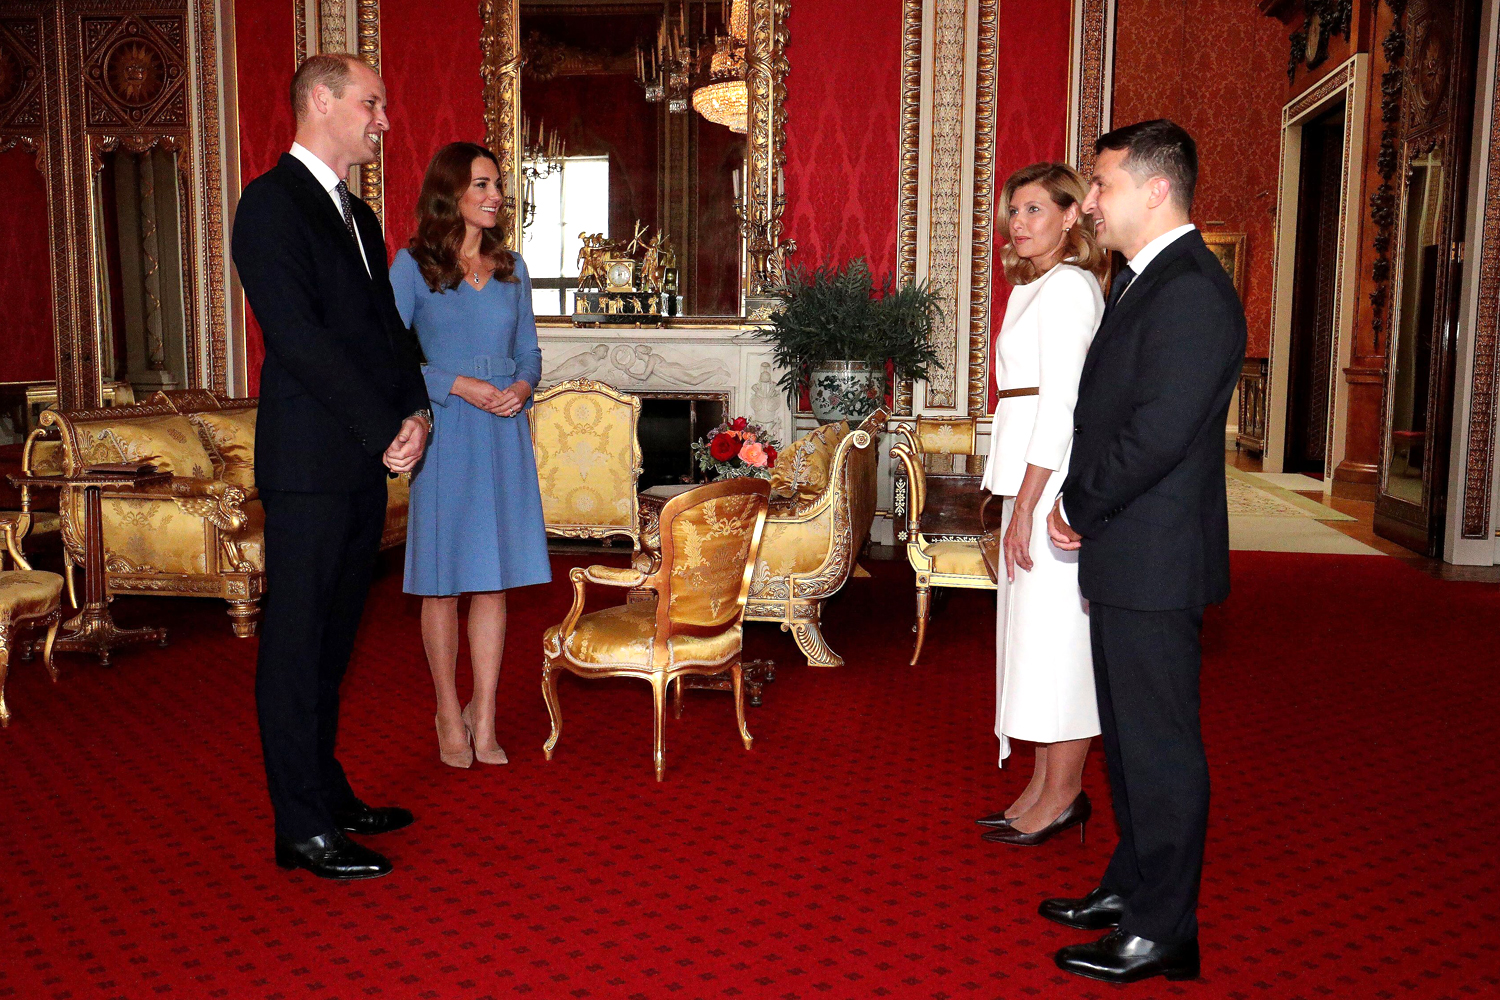 Prince William and Kate, Duchess of Cambridge meet the Ukraine President Volodymyr Zelenskiy, right, and his wife, Olena